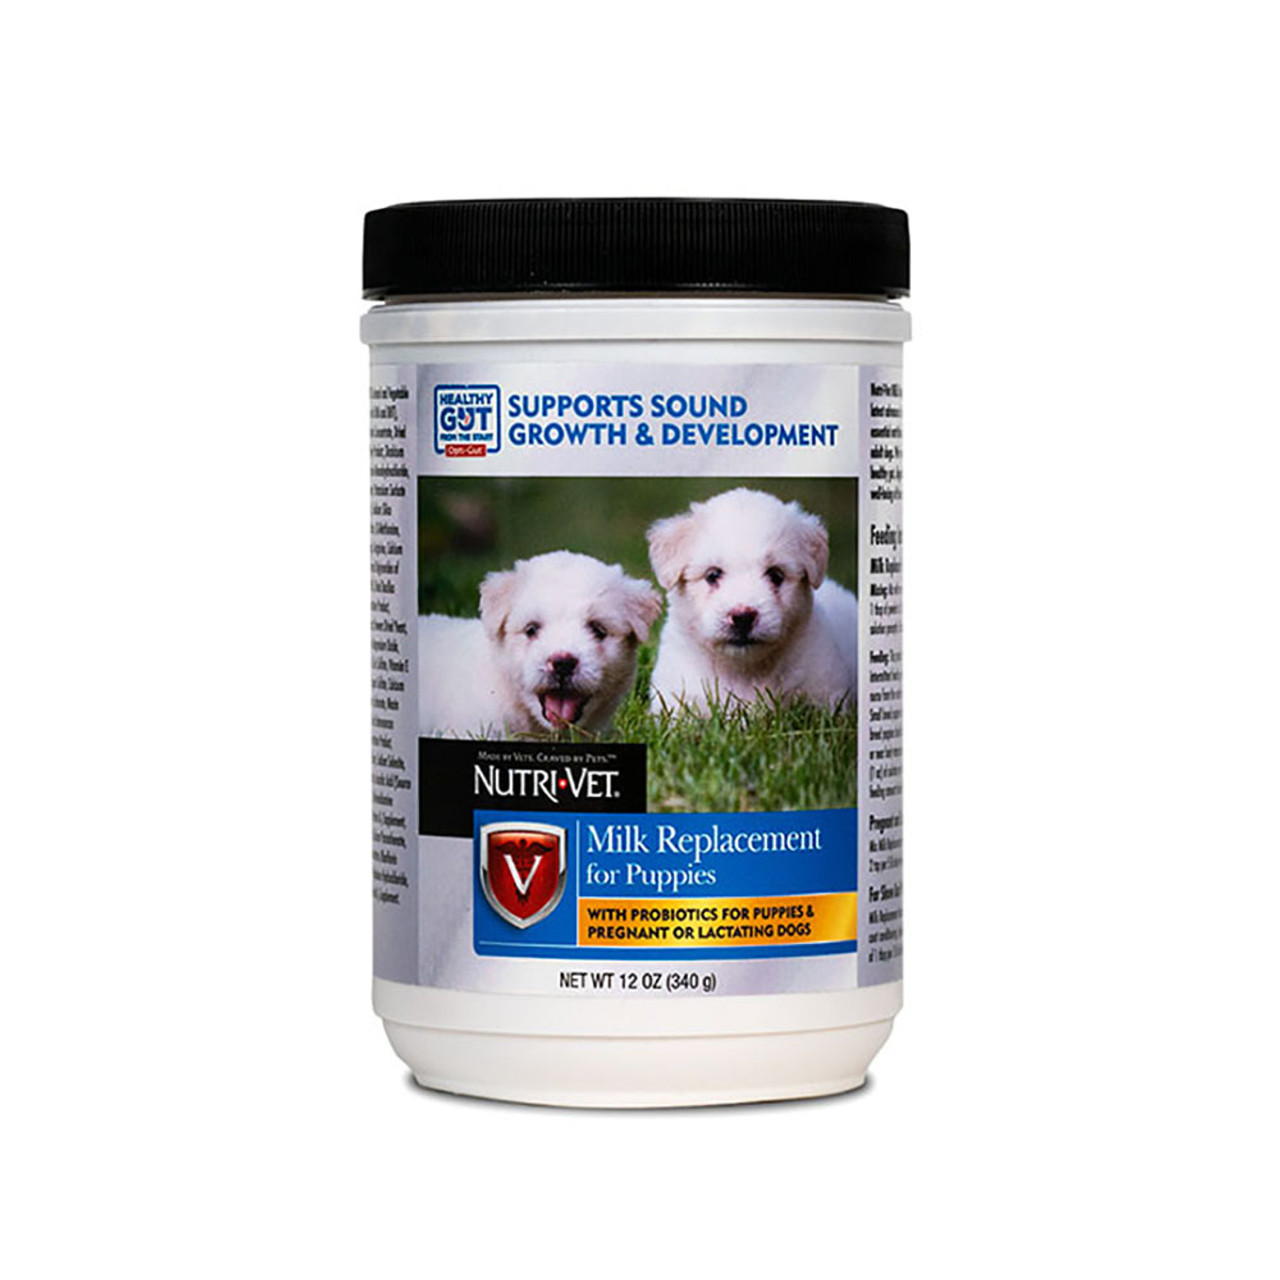 Nutri-Vet Milk Replacer with Opti-Gut for Puppies